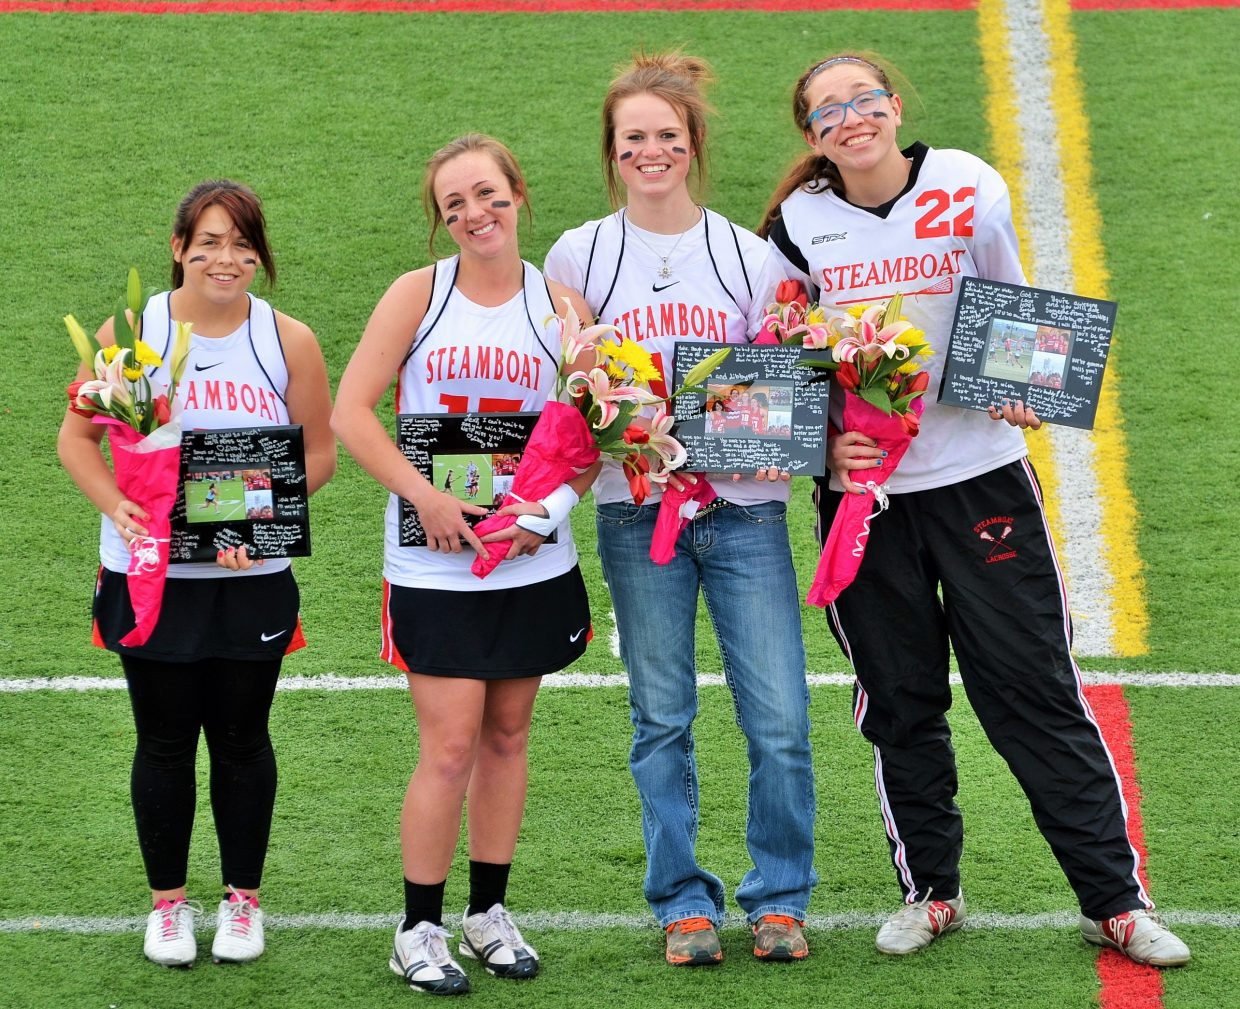 The four seniors on Steamboat Springs' girls lacrosse team: Meghan Garcia, from left, Lexy Look, Katie Parker and Kyla Taylor. Submitted by Shannon Lukens.